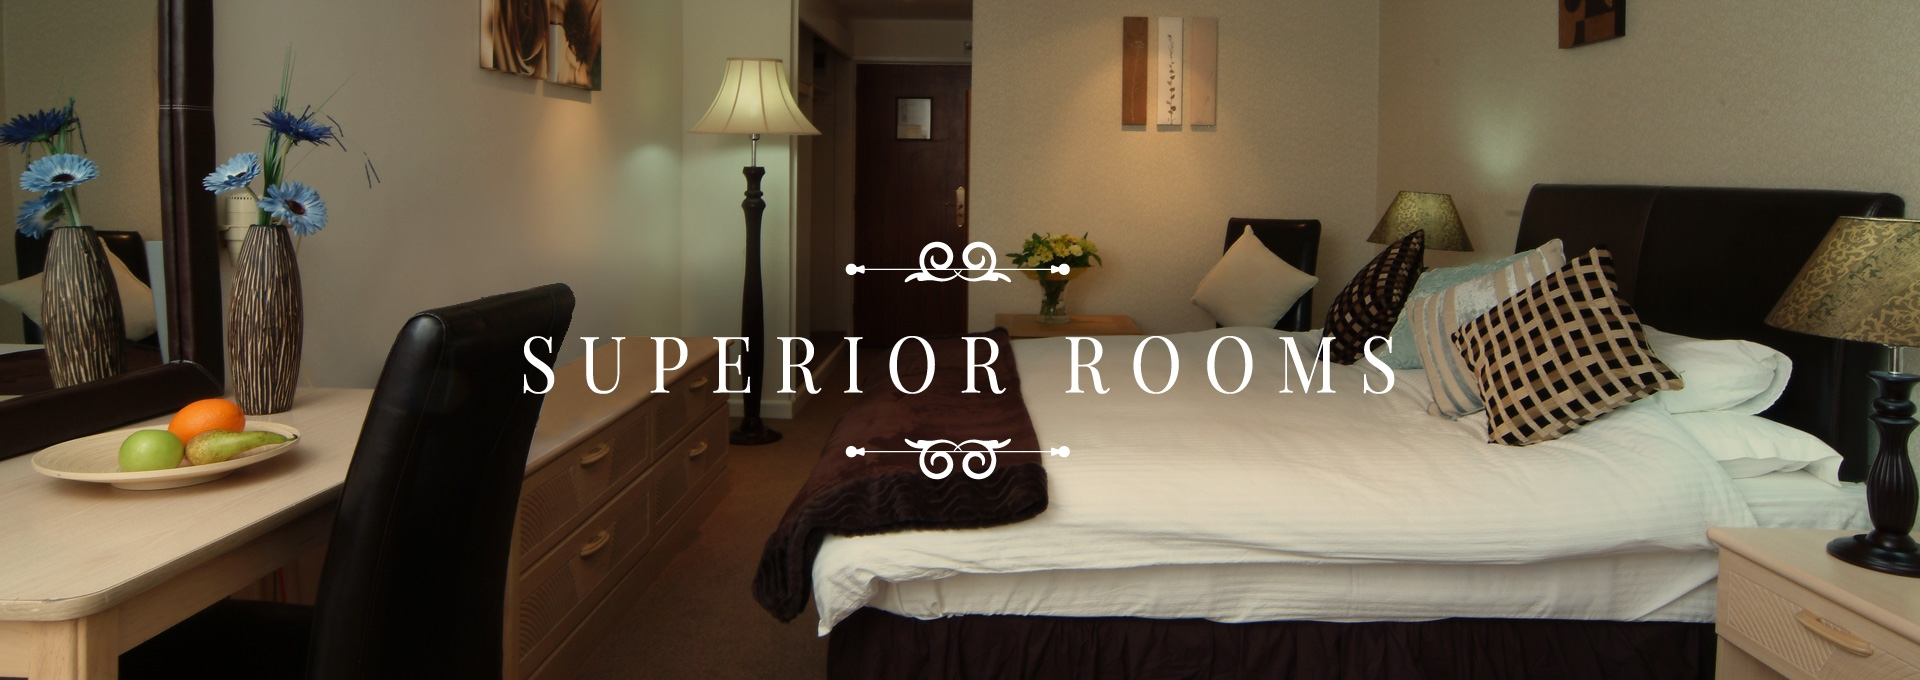 Superior Rooms at the Durrant House Hotel Bideford